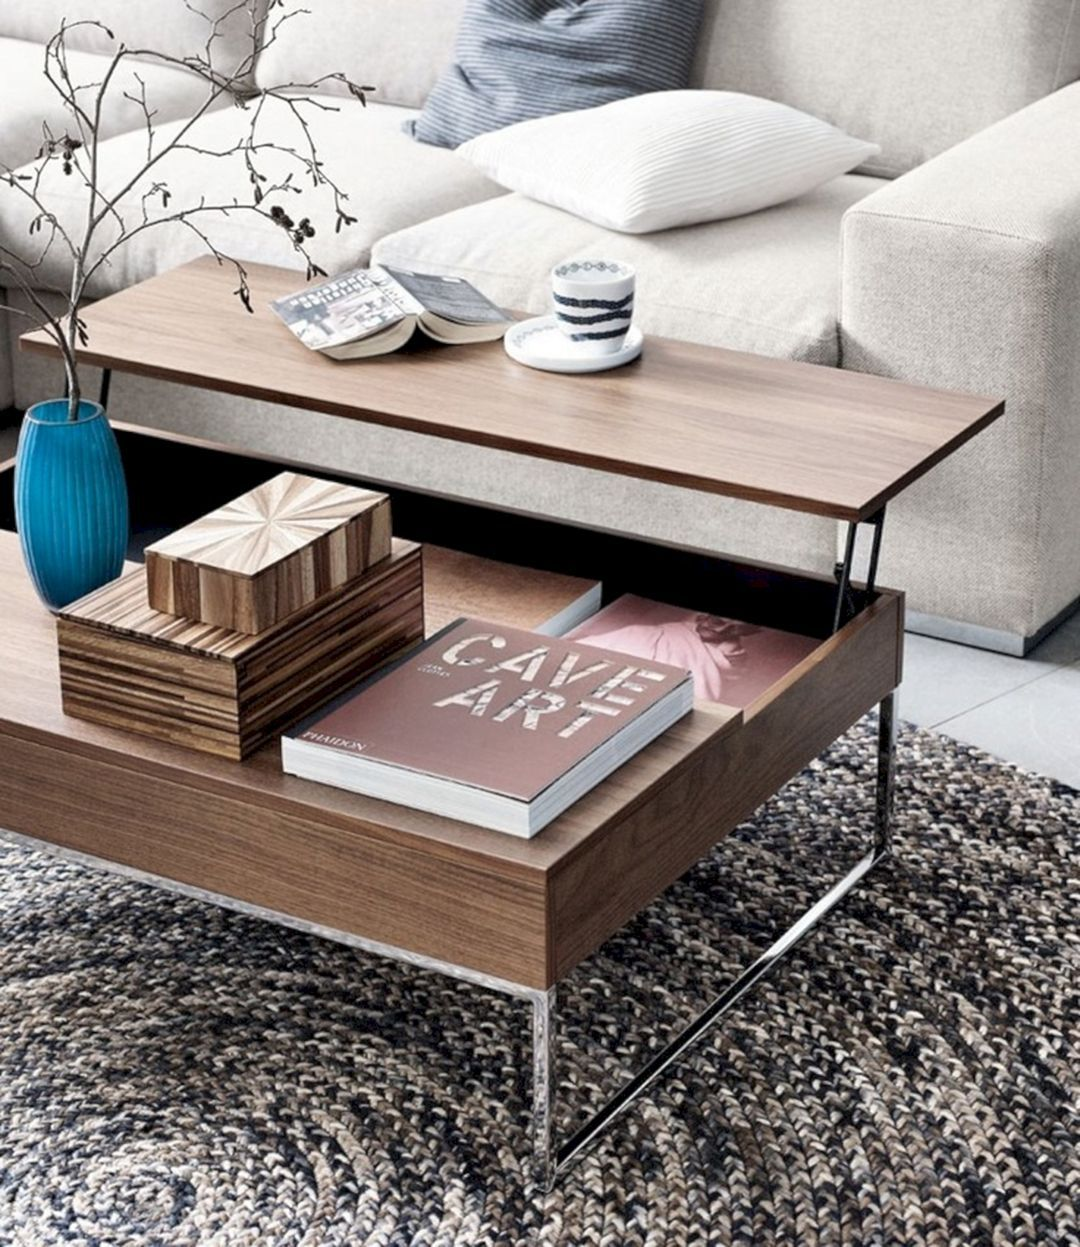 15 Incredible Coffee Table Styling Ideas For Best Home Decor It S Coffee Table Design Coffee Table Coffee Table Styling [ 1247 x 1080 Pixel ]